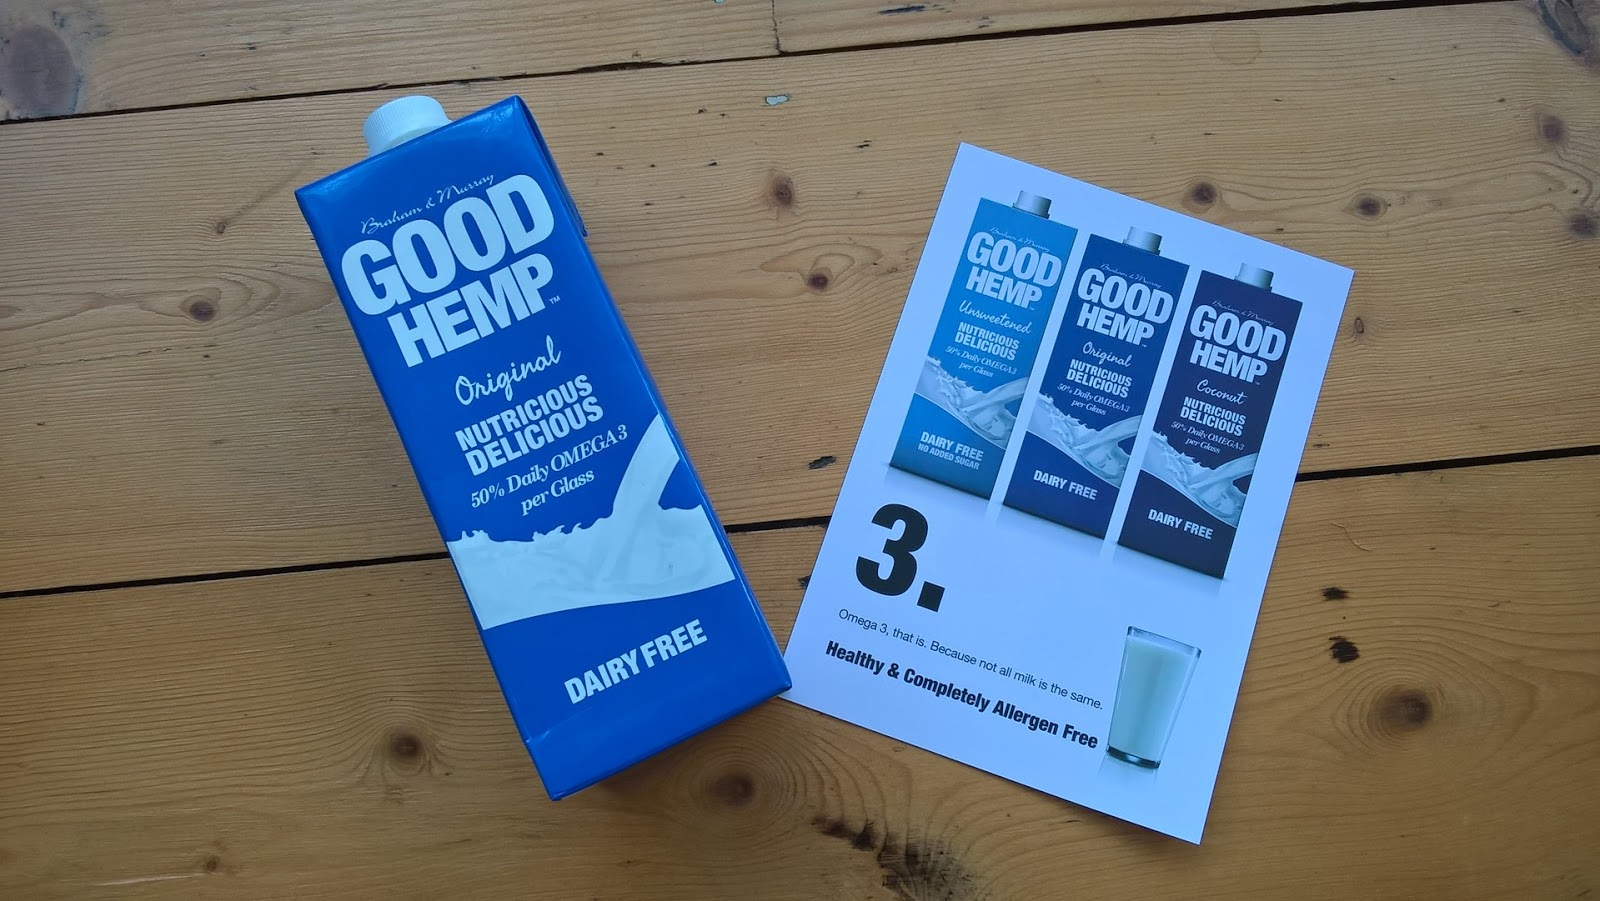 Good Hemp Original Dairy Free Milk - Food Subscription Boxes - motherdistracted.co.uk